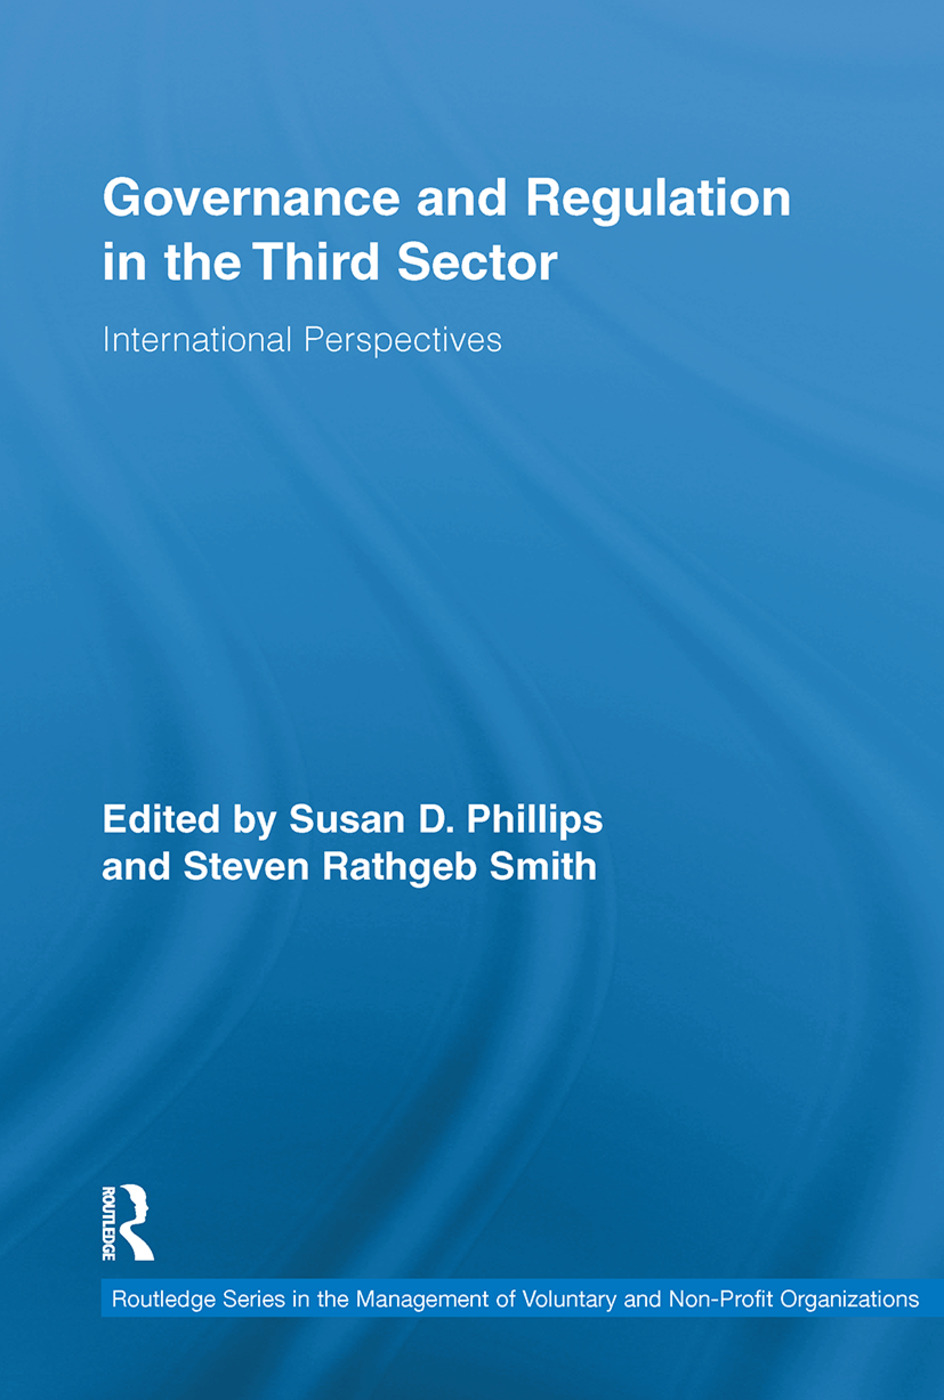 Governance and Regulation in the Third Sector